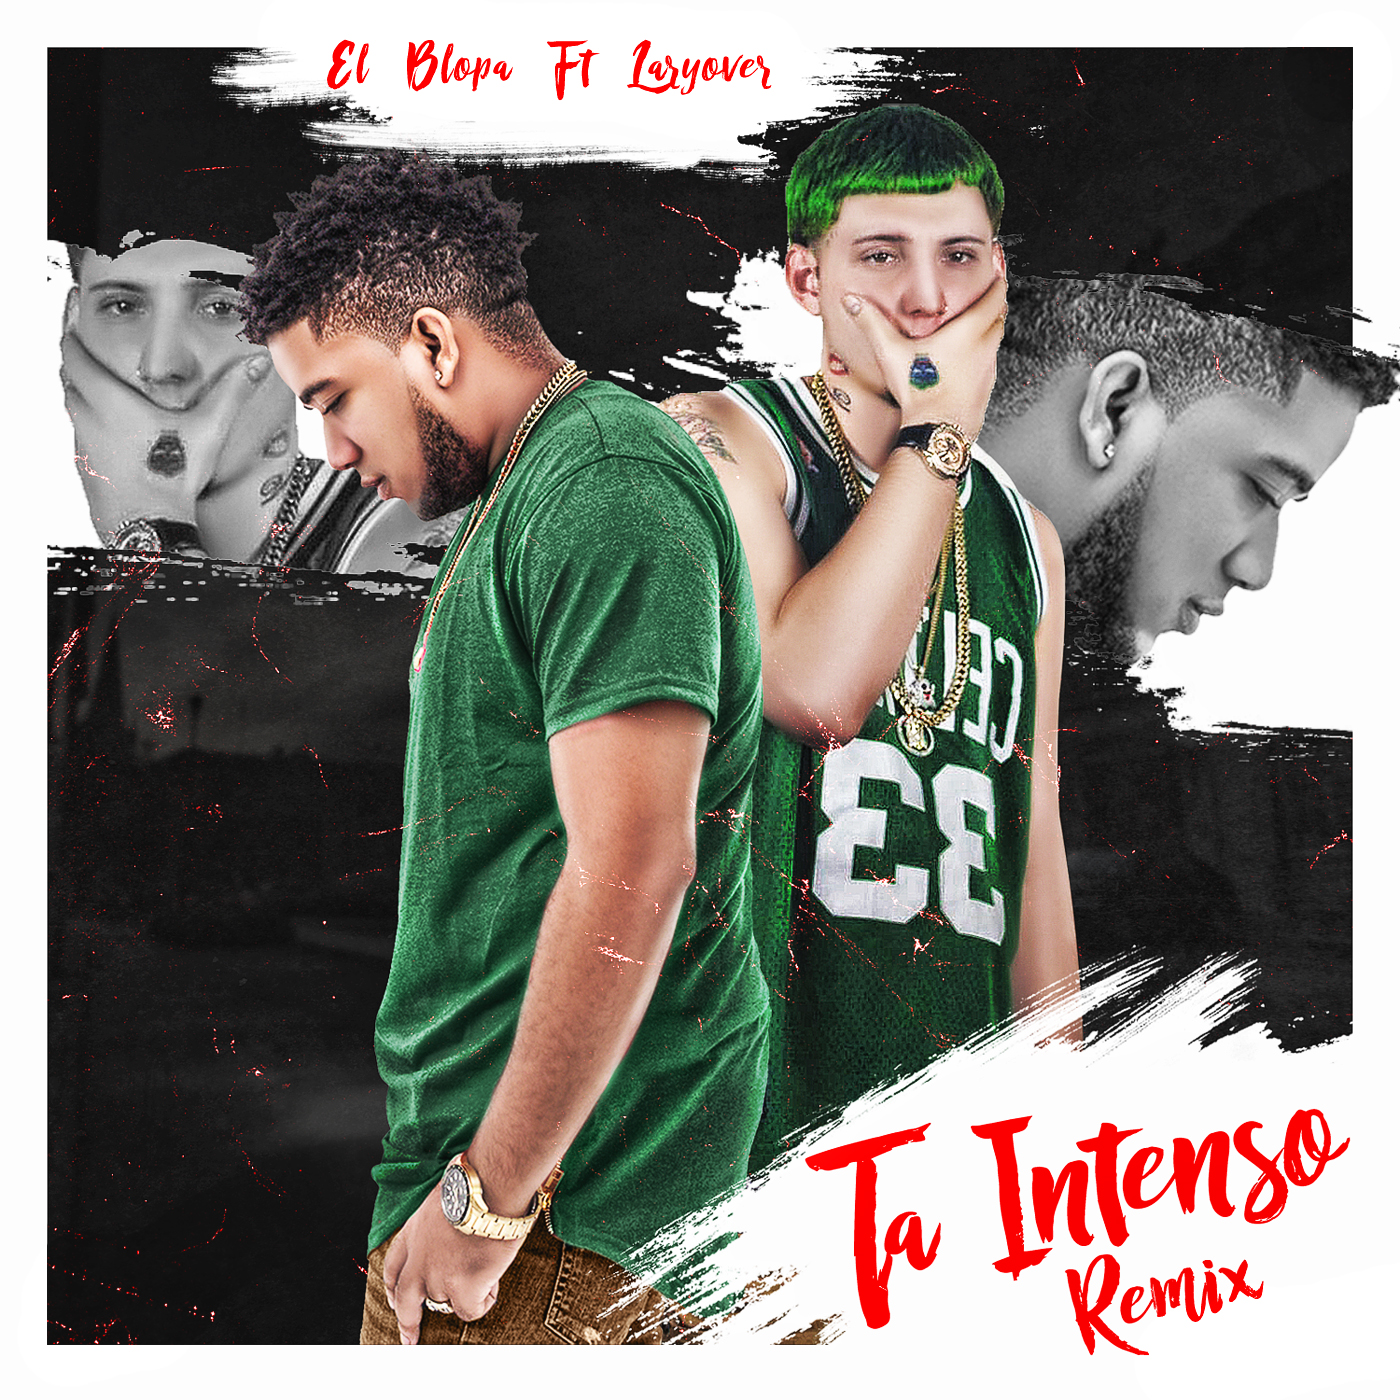 El Blopa Ft Lary Over - Ta Intenso Remix